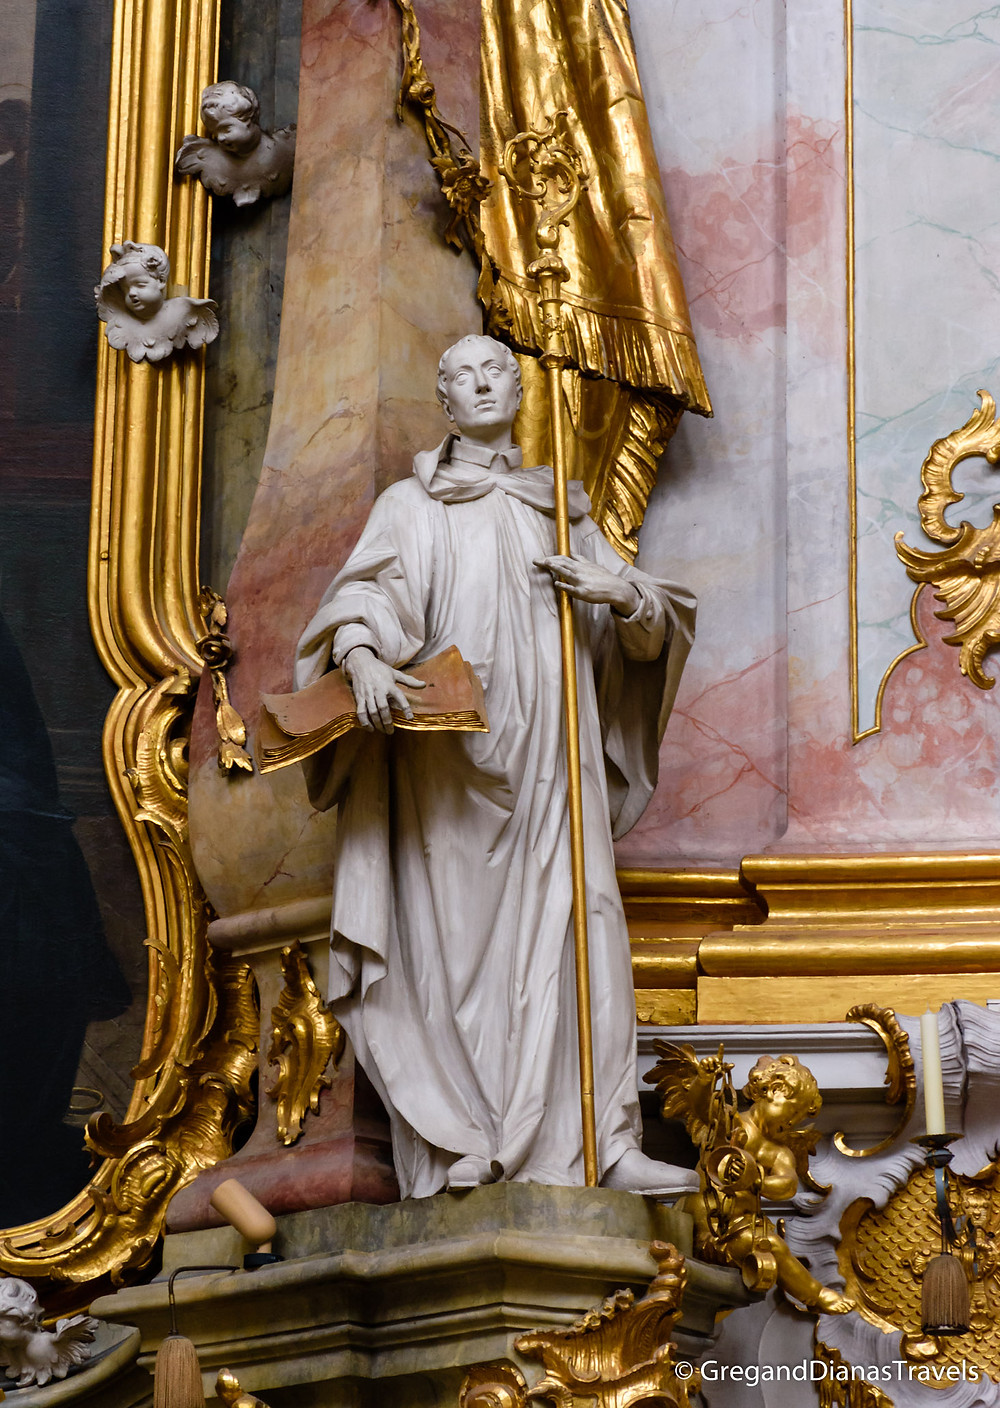 Statue in Ettal Church, Ettal Abbey, Bavaria Germany, Bayern Deutschland, Travel blog, Travel photography